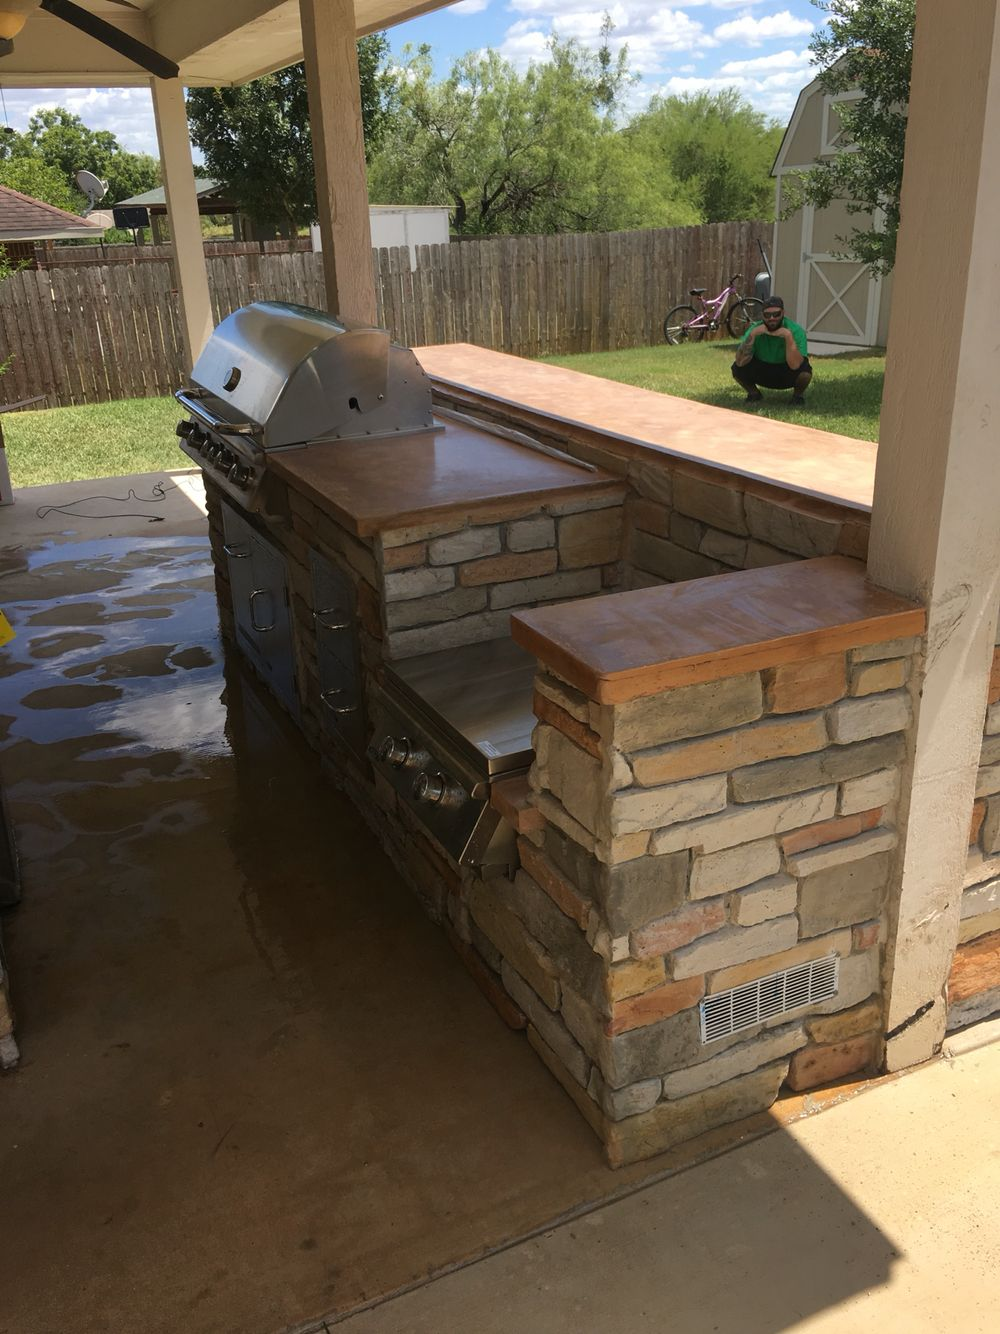 Hard to believe the walls are made of concrete! Looks like natural stone and no worry of future mortar failure! www.gebhardtdesigns.com